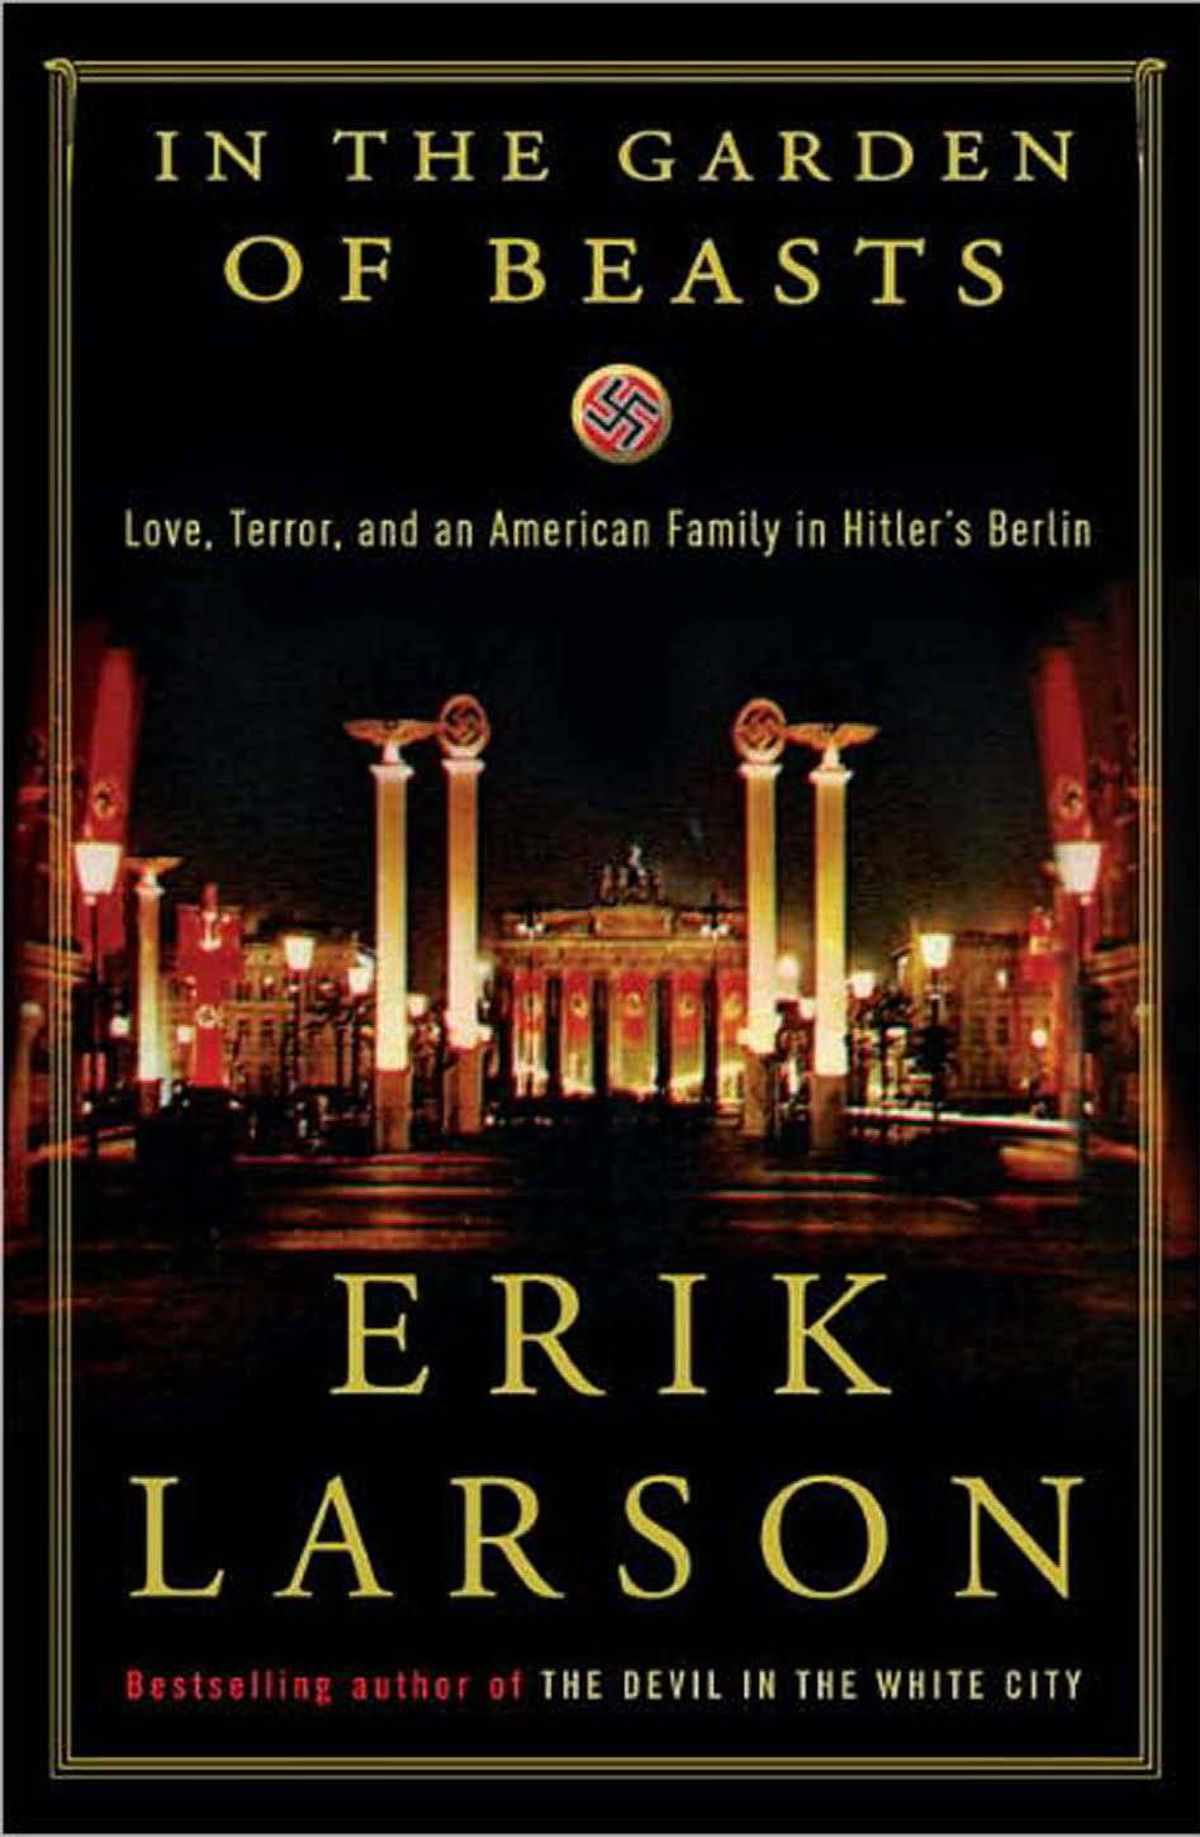 IN THE GARDEN OF BEASTS Love, Terror, and an American Family in Hitler's Berlin By Erik Larson (Crown) This tale of U.S. ambassador Christopher Dodd and family landing in 1933 Germany is very sad, because Hitler could have been stopped early on, and because so many Germans blithely followed him. But it is also superb; Larson's core idea, to trace the moral corruption of an entire society through the swiftly altering perceptions of one family, is masterful. – Martin Levin